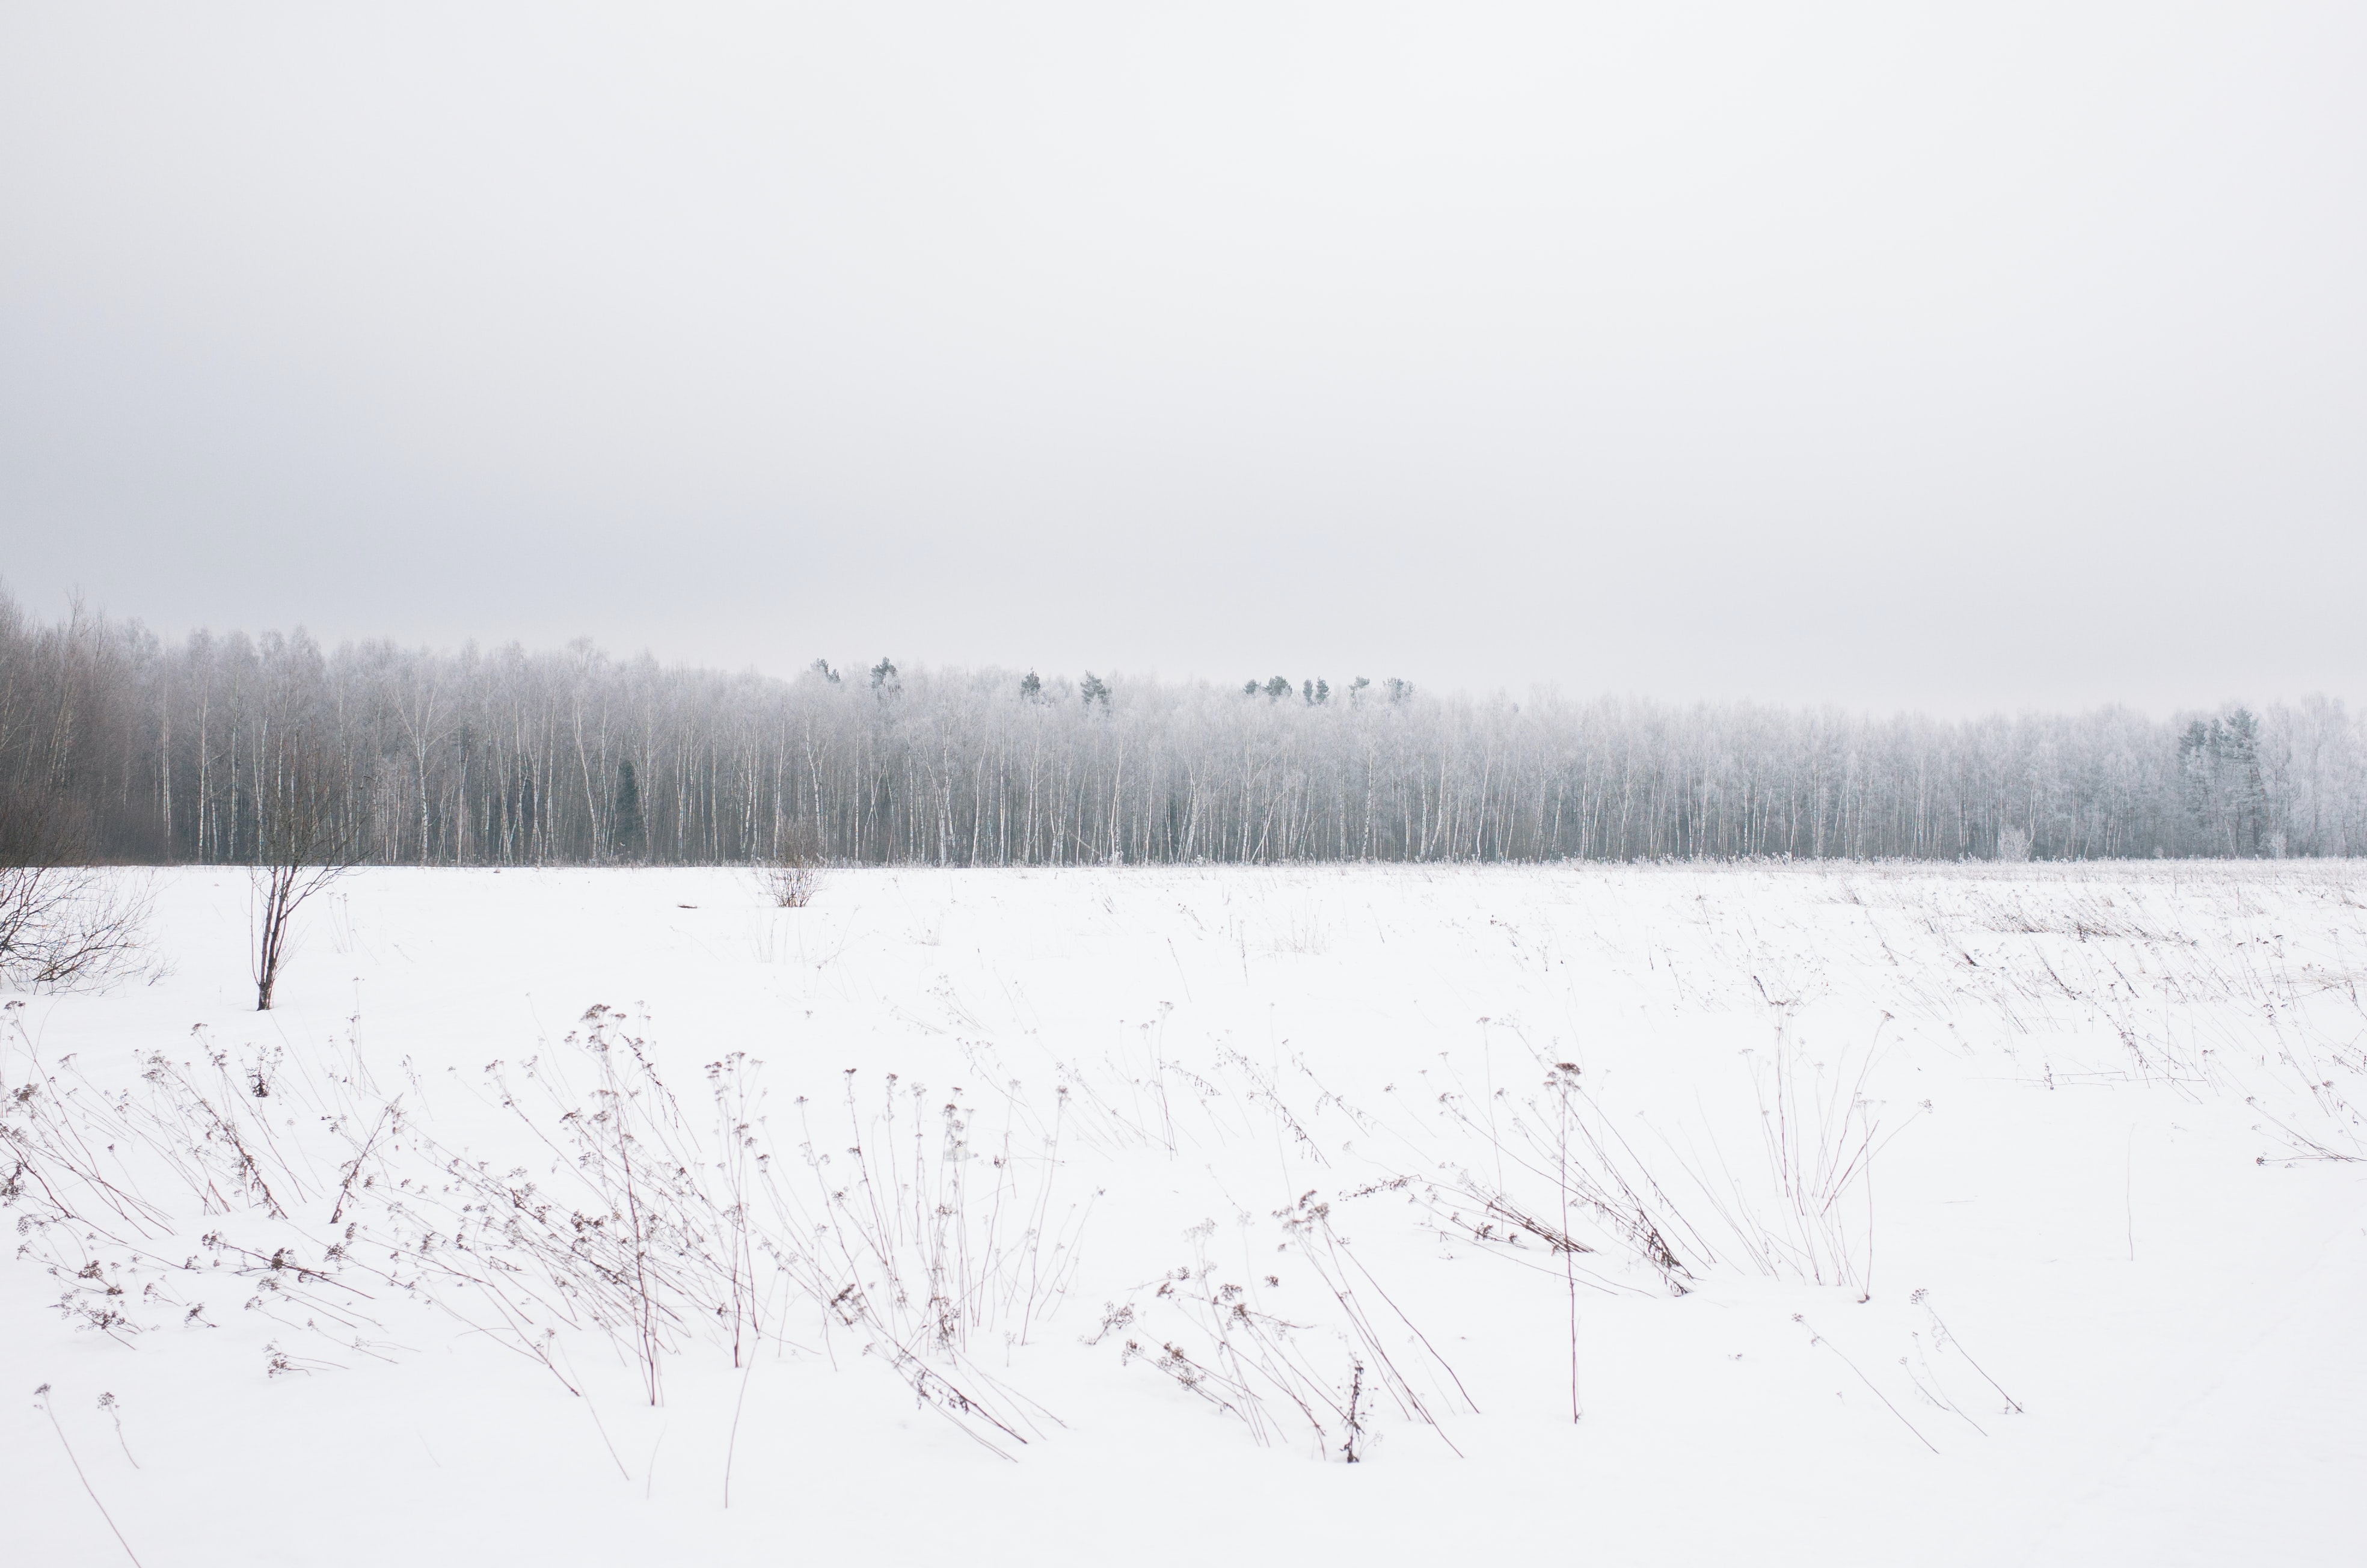 snow land with trees at distance